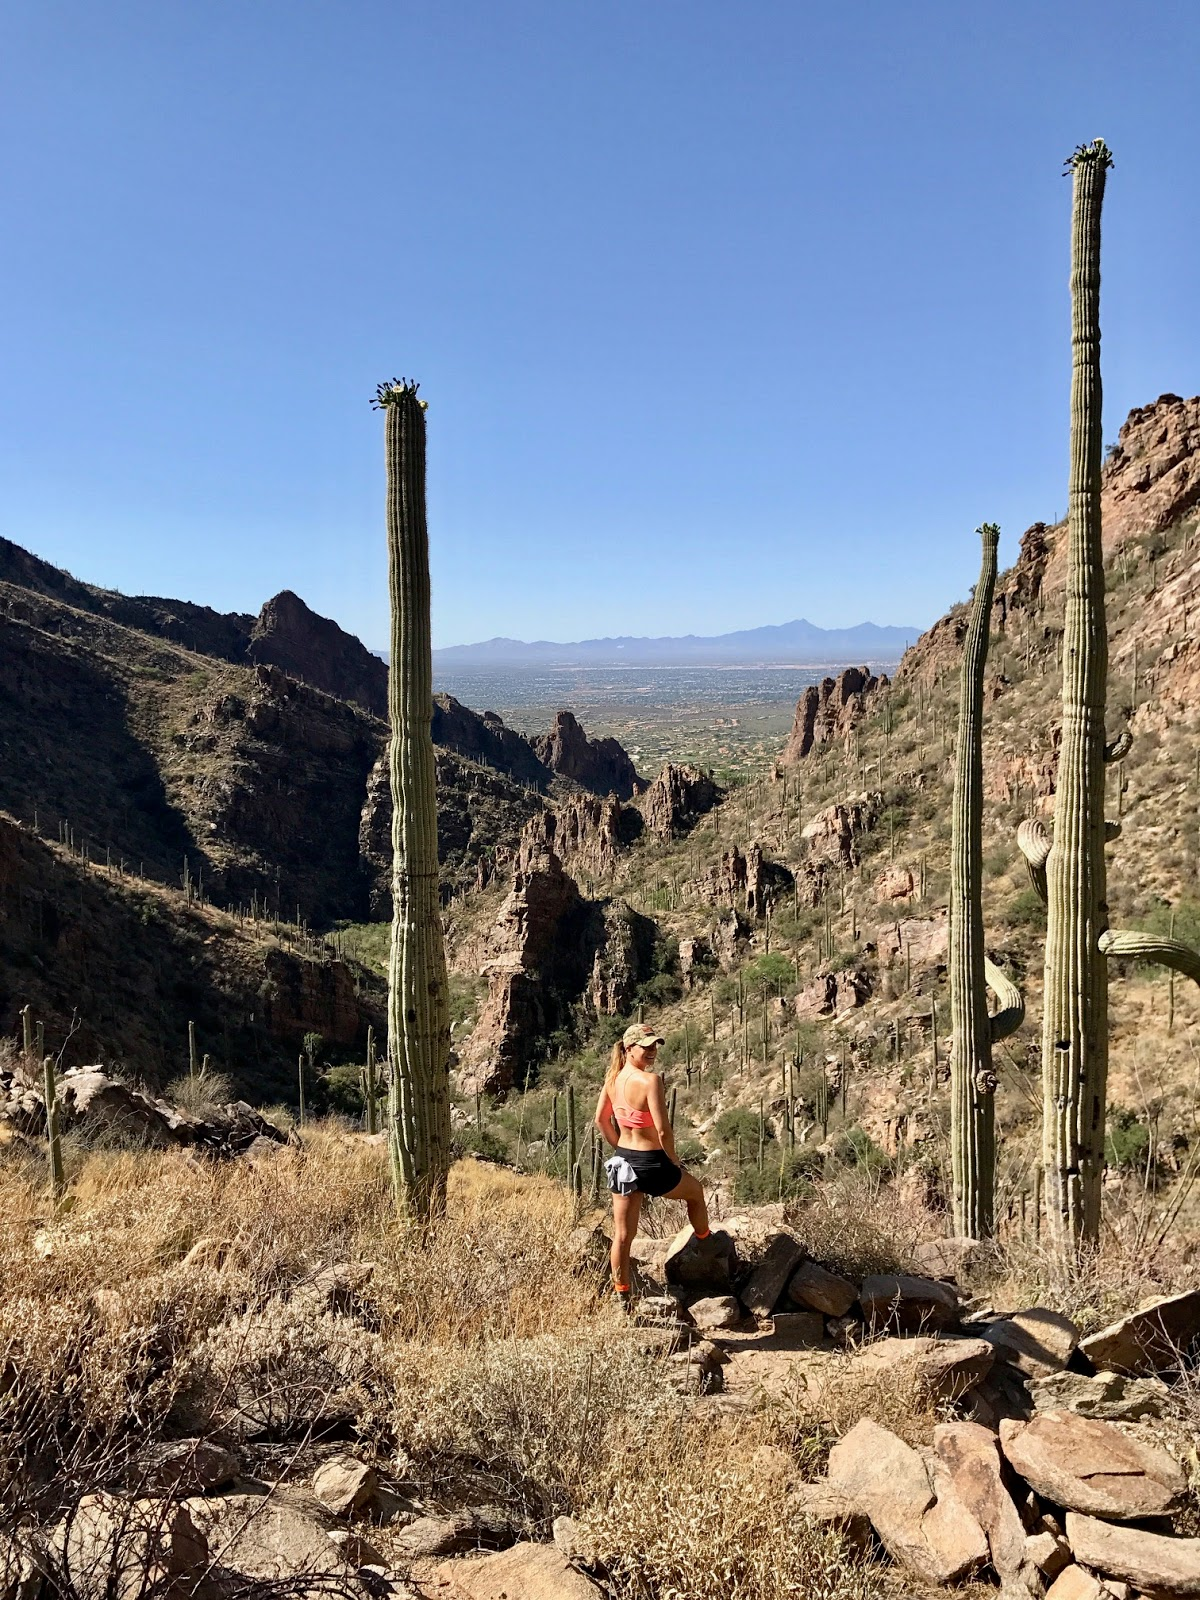 Ventana Canyon Trail, Tanque Verde Arizona, Loews Ventana Canyon